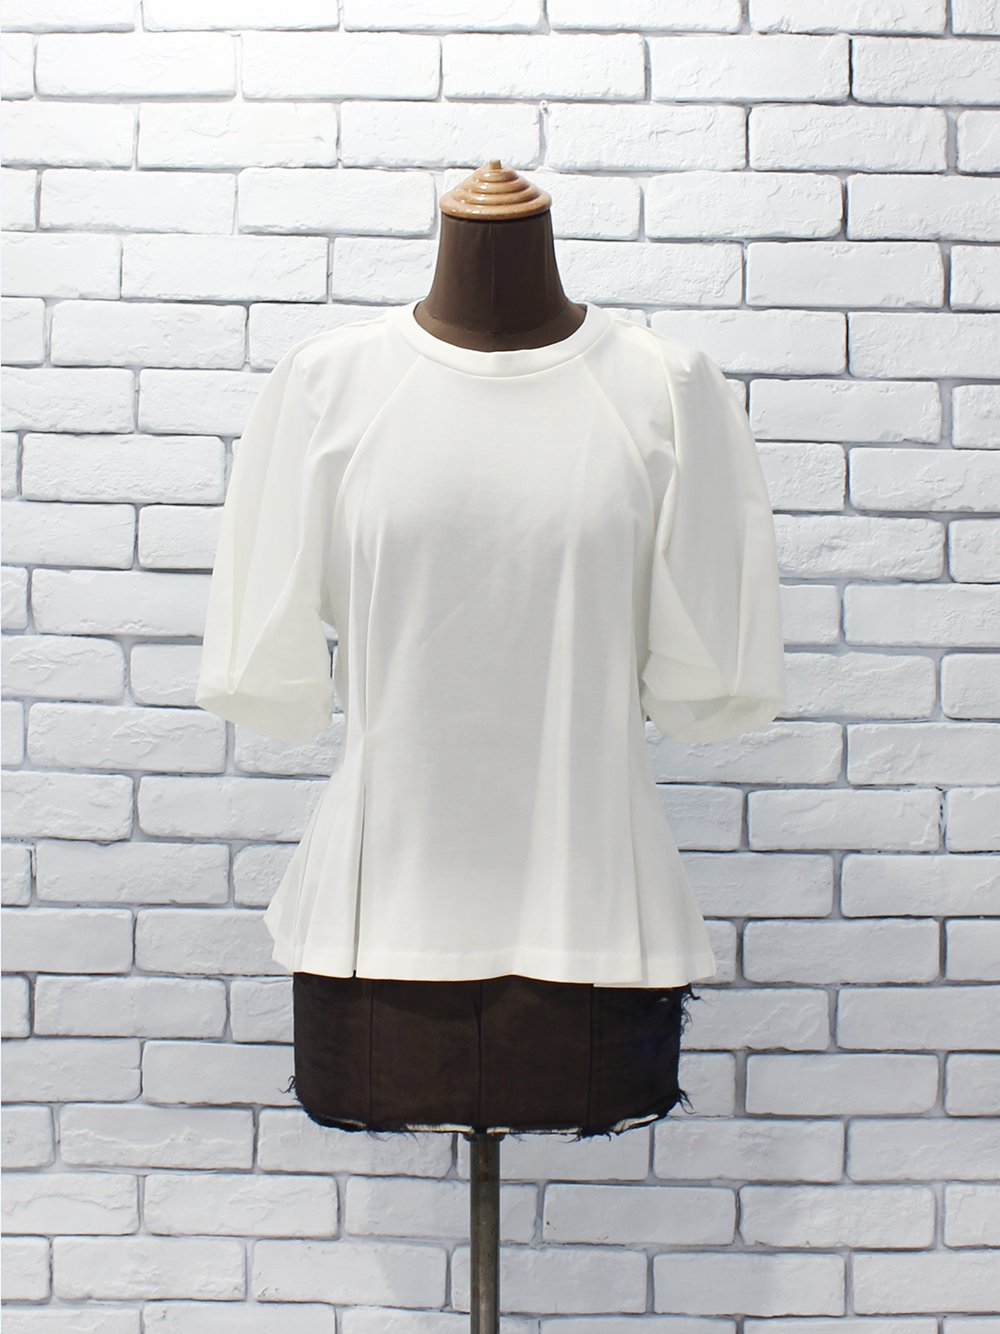 """<img class='new_mark_img1' src='https://img.shop-pro.jp/img/new/icons8.gif' style='border:none;display:inline;margin:0px;padding:0px;width:auto;' />PHEENY """"Tucked sleeve Tee (white) """""""